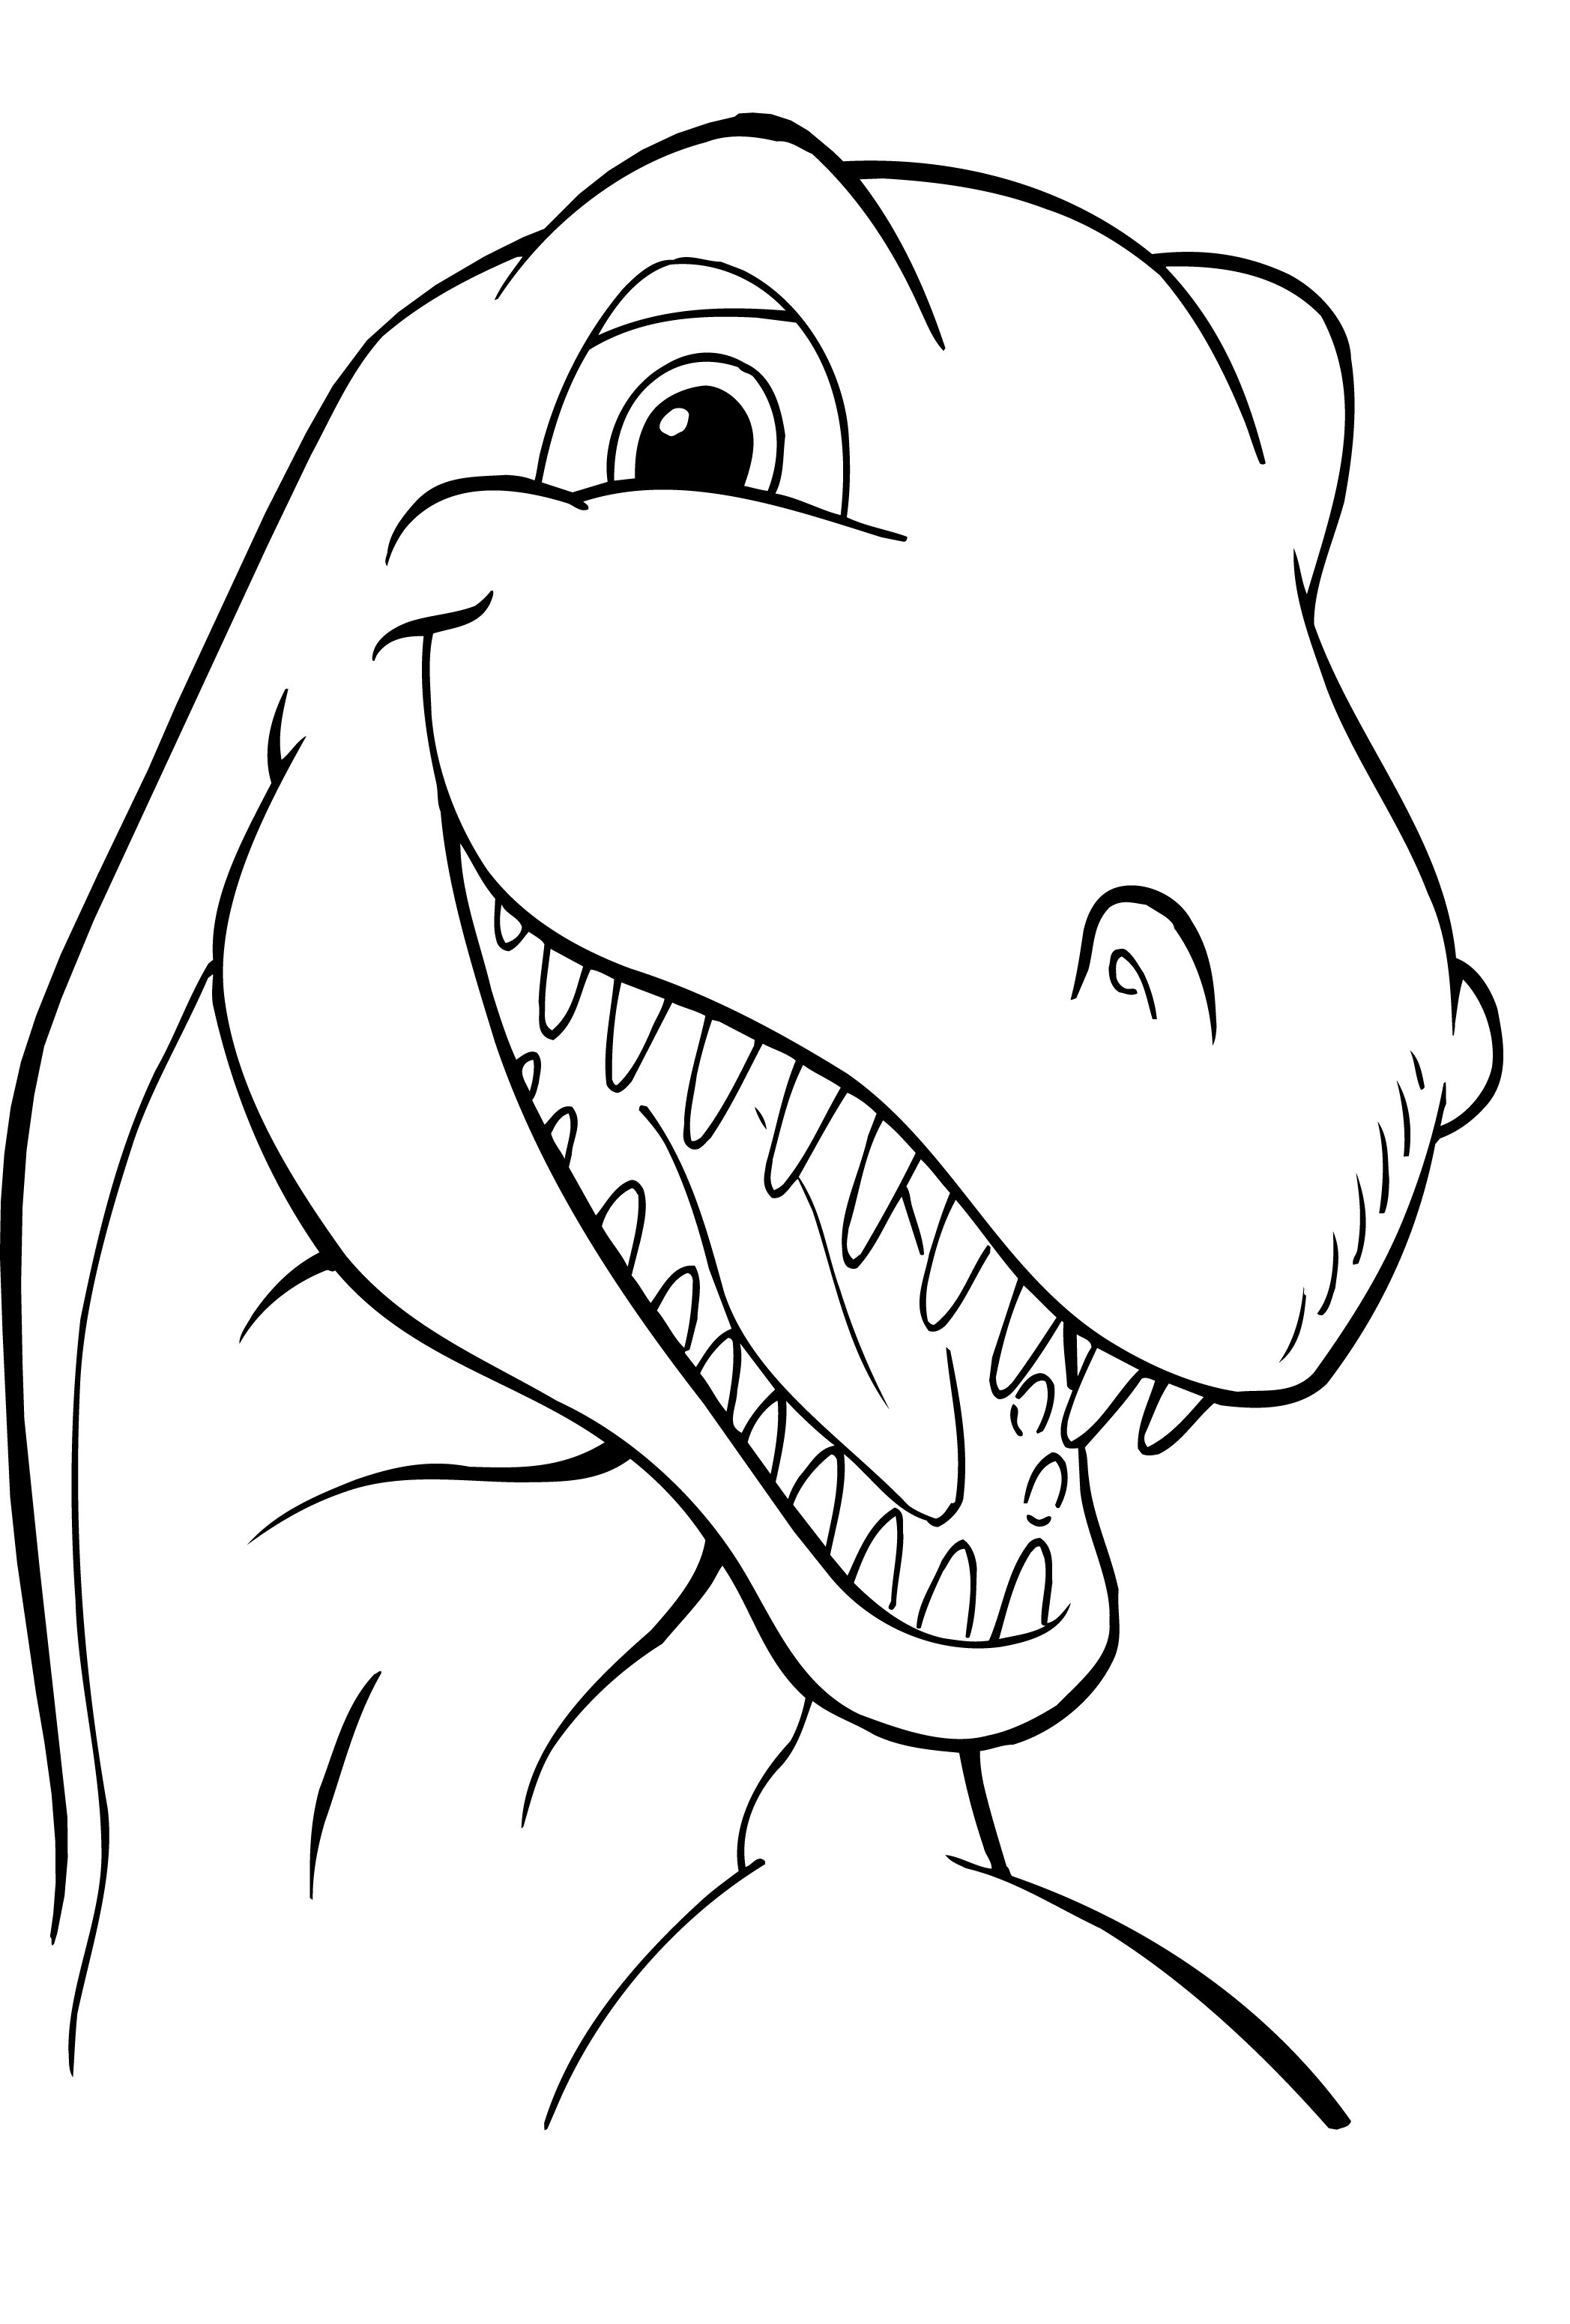 5 Images of Free Color Printable Dinosaur Coloring Pages